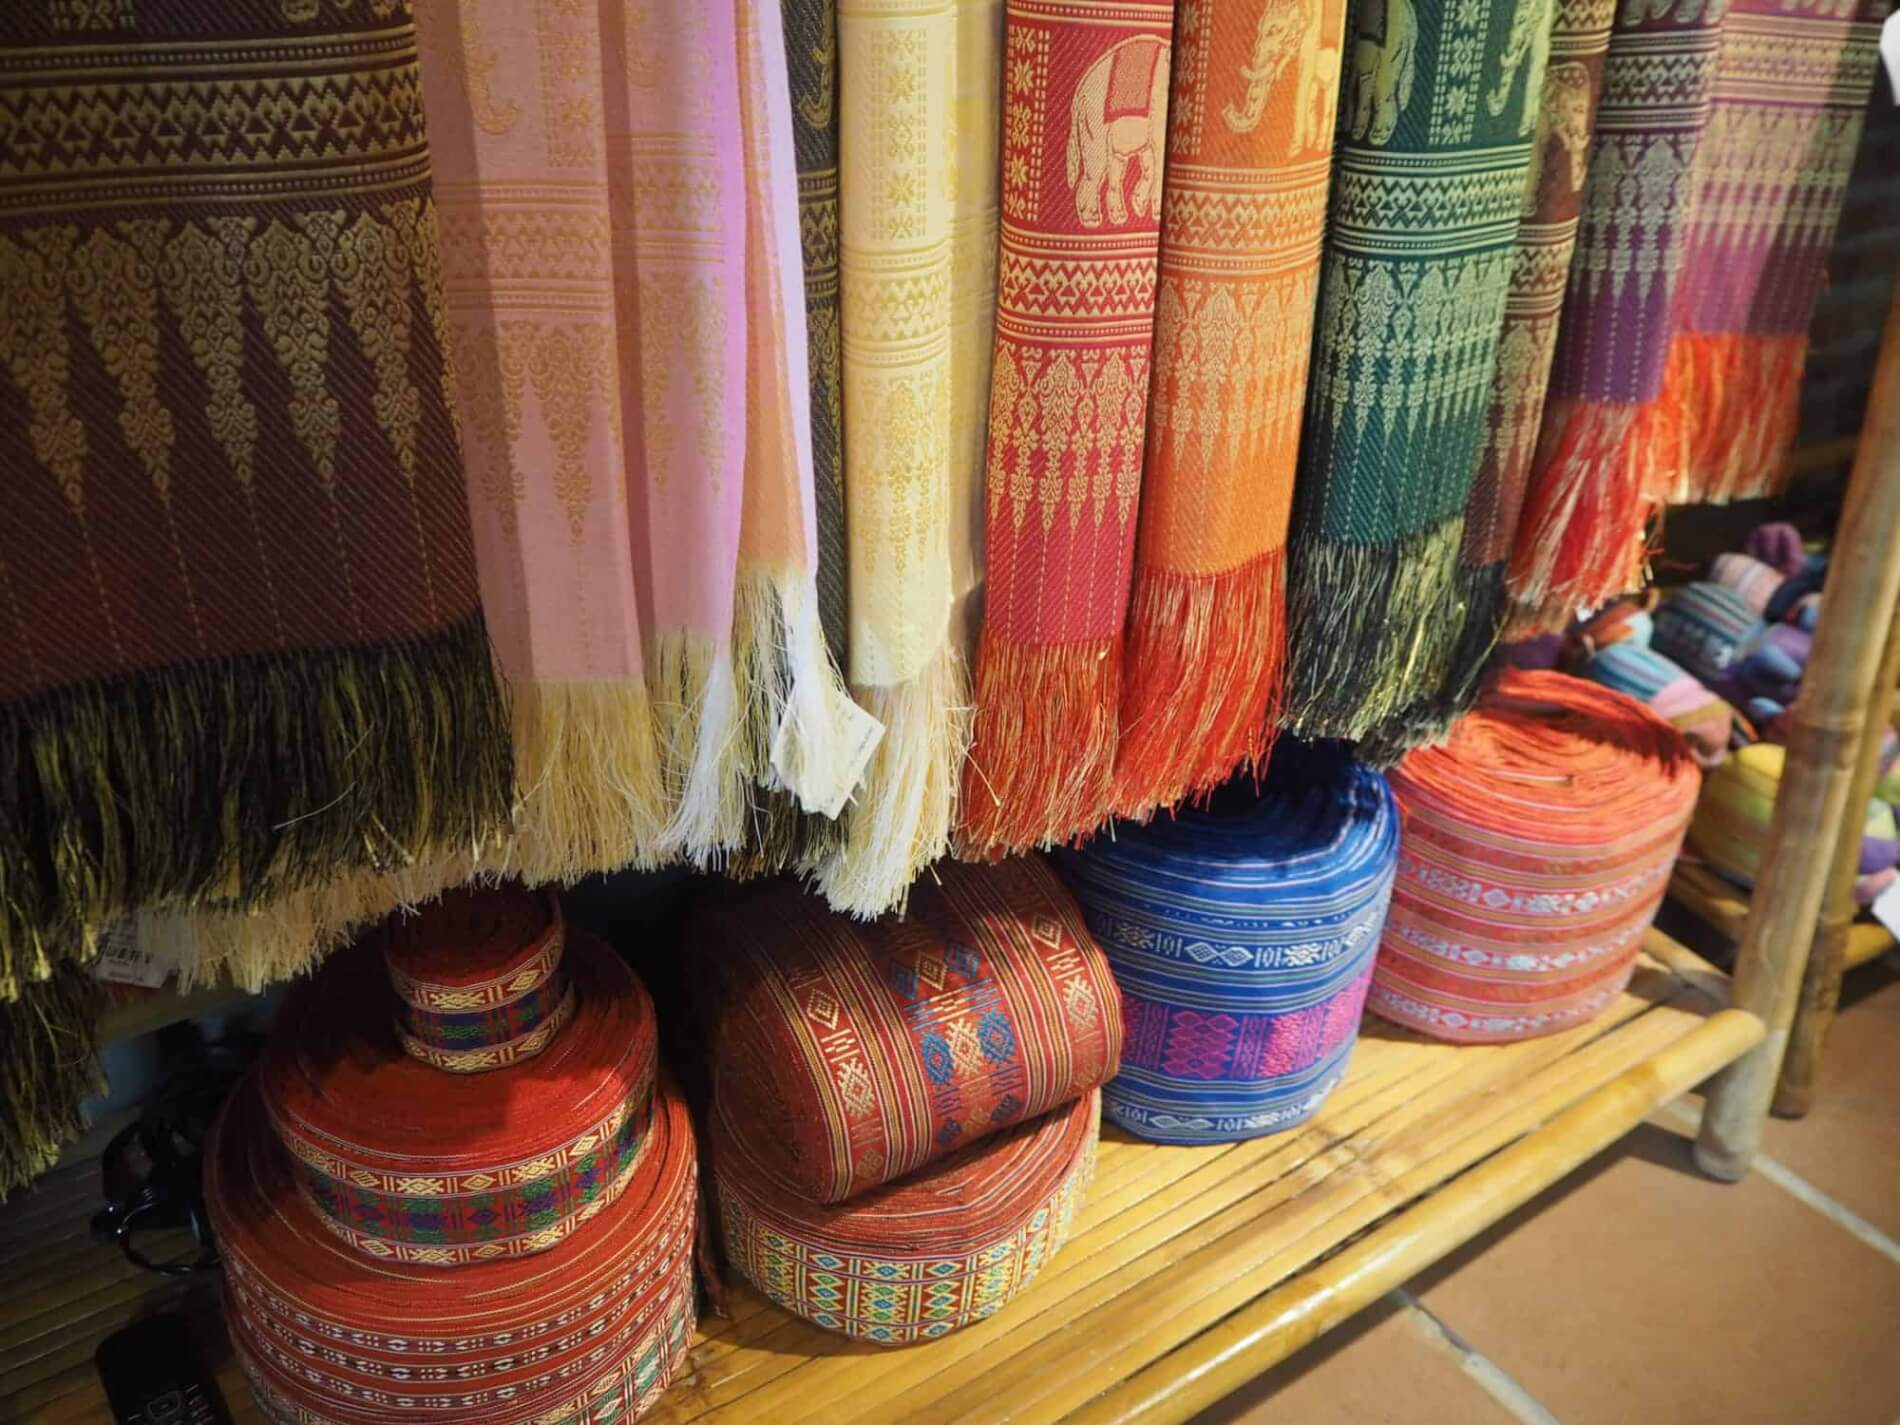 Hoi An Silk Village - items for sale